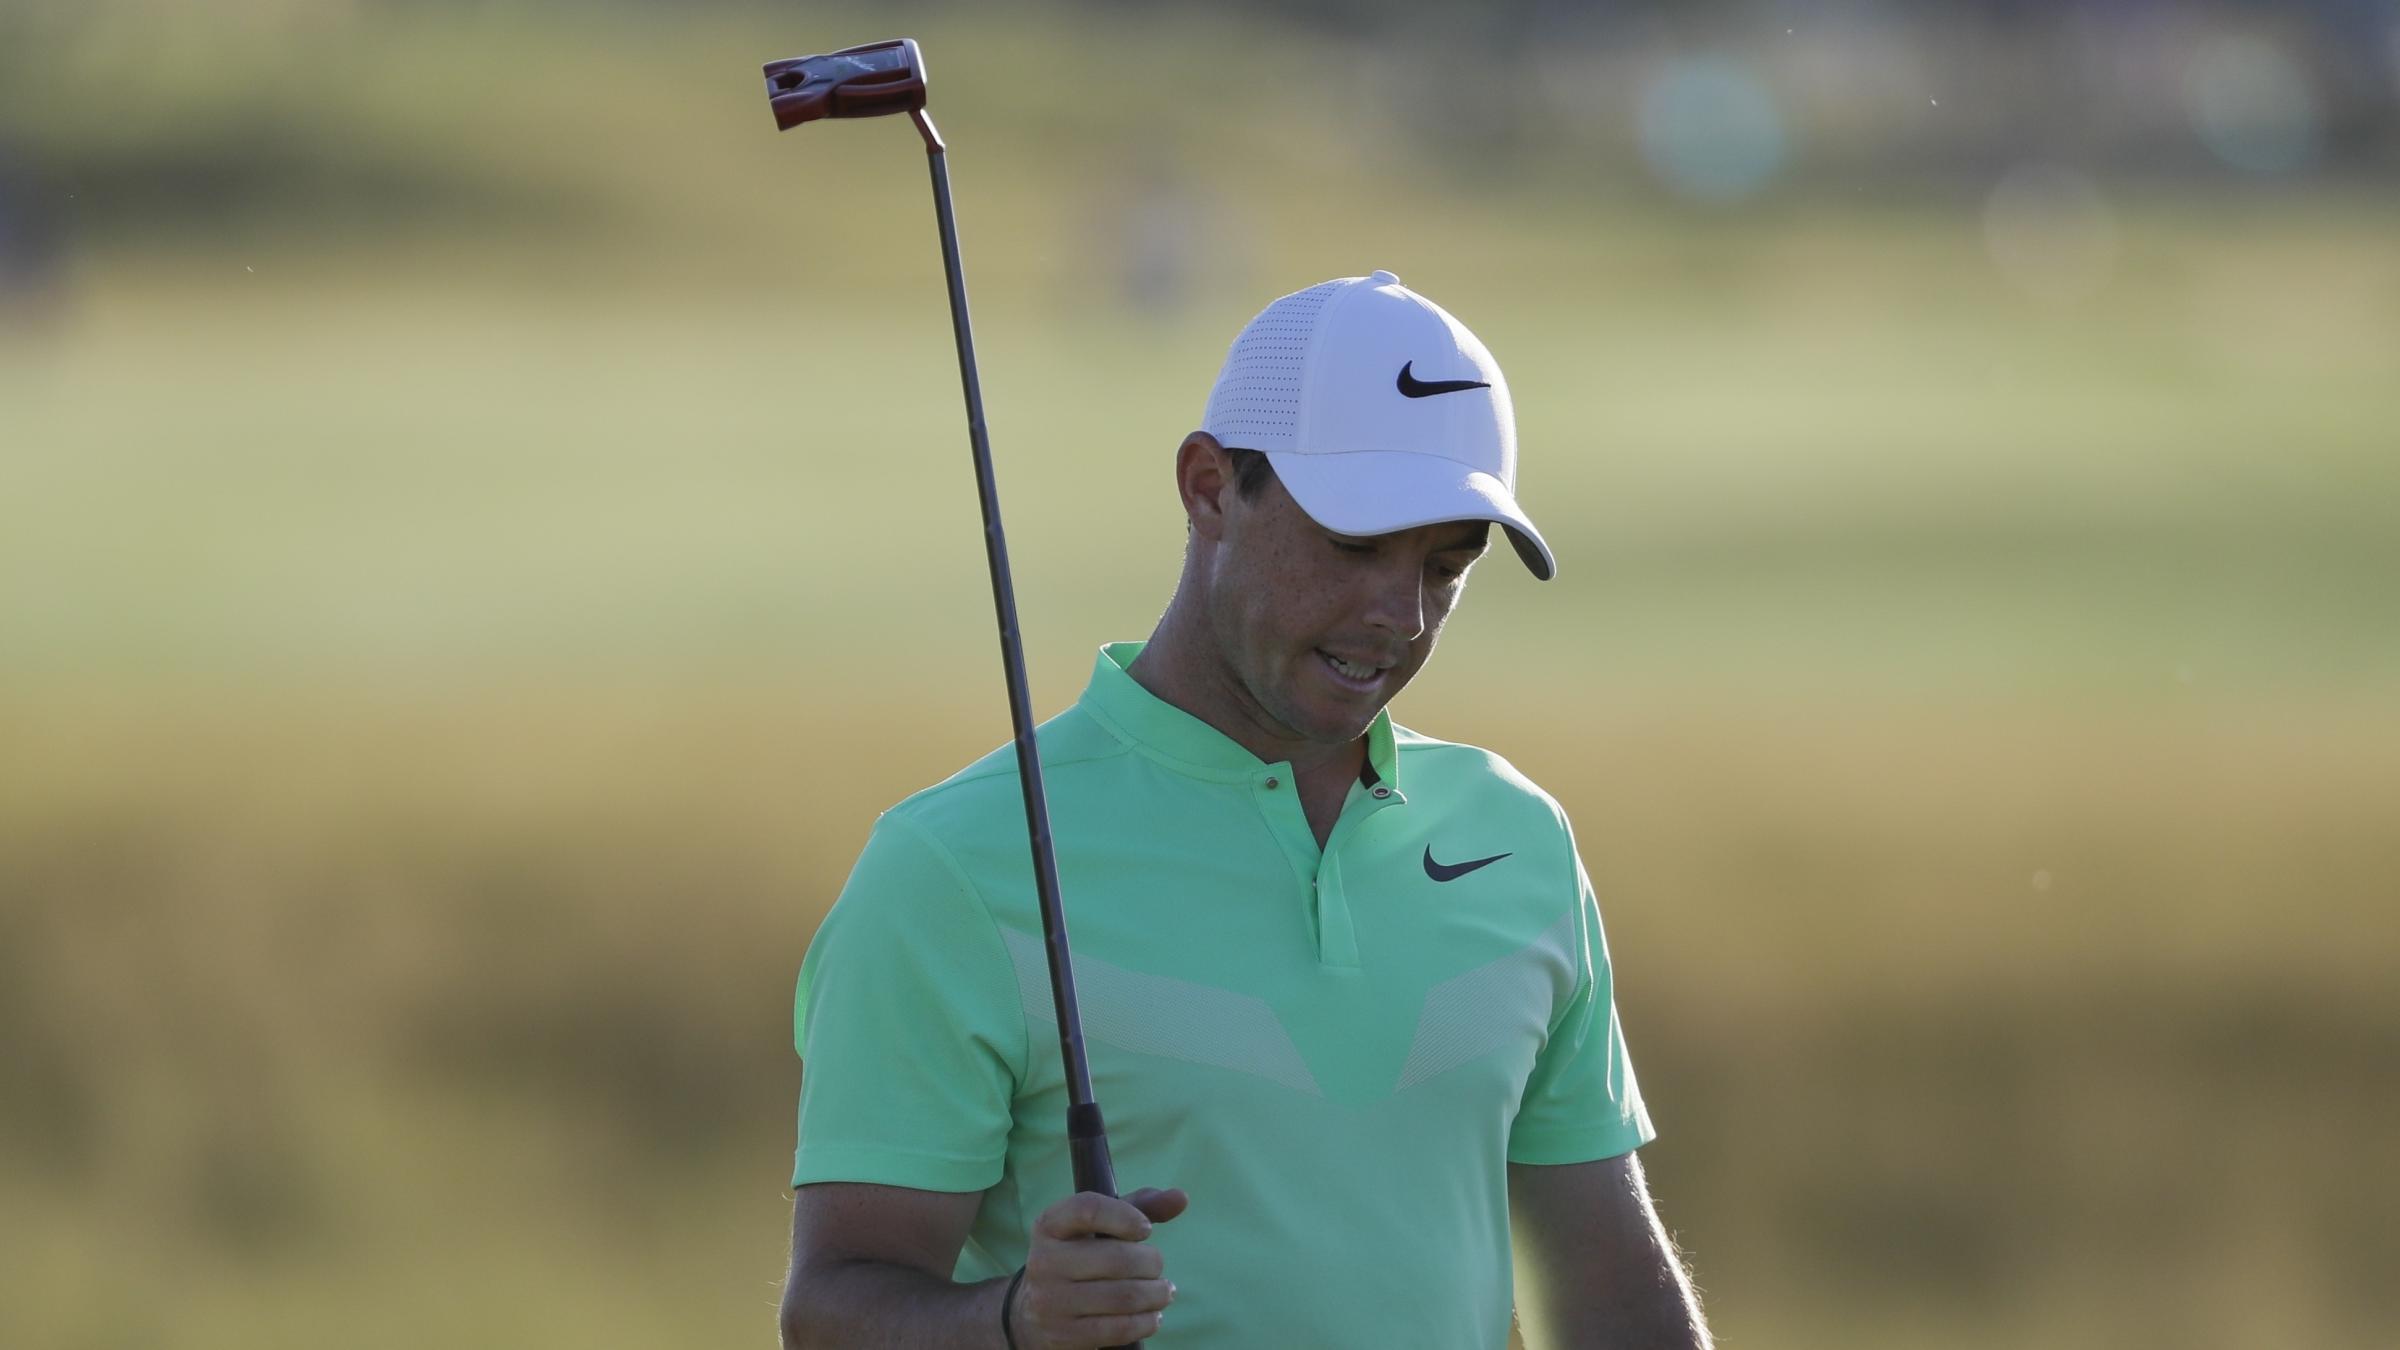 McIlroy dismisses Twitter criticism after US Open exit